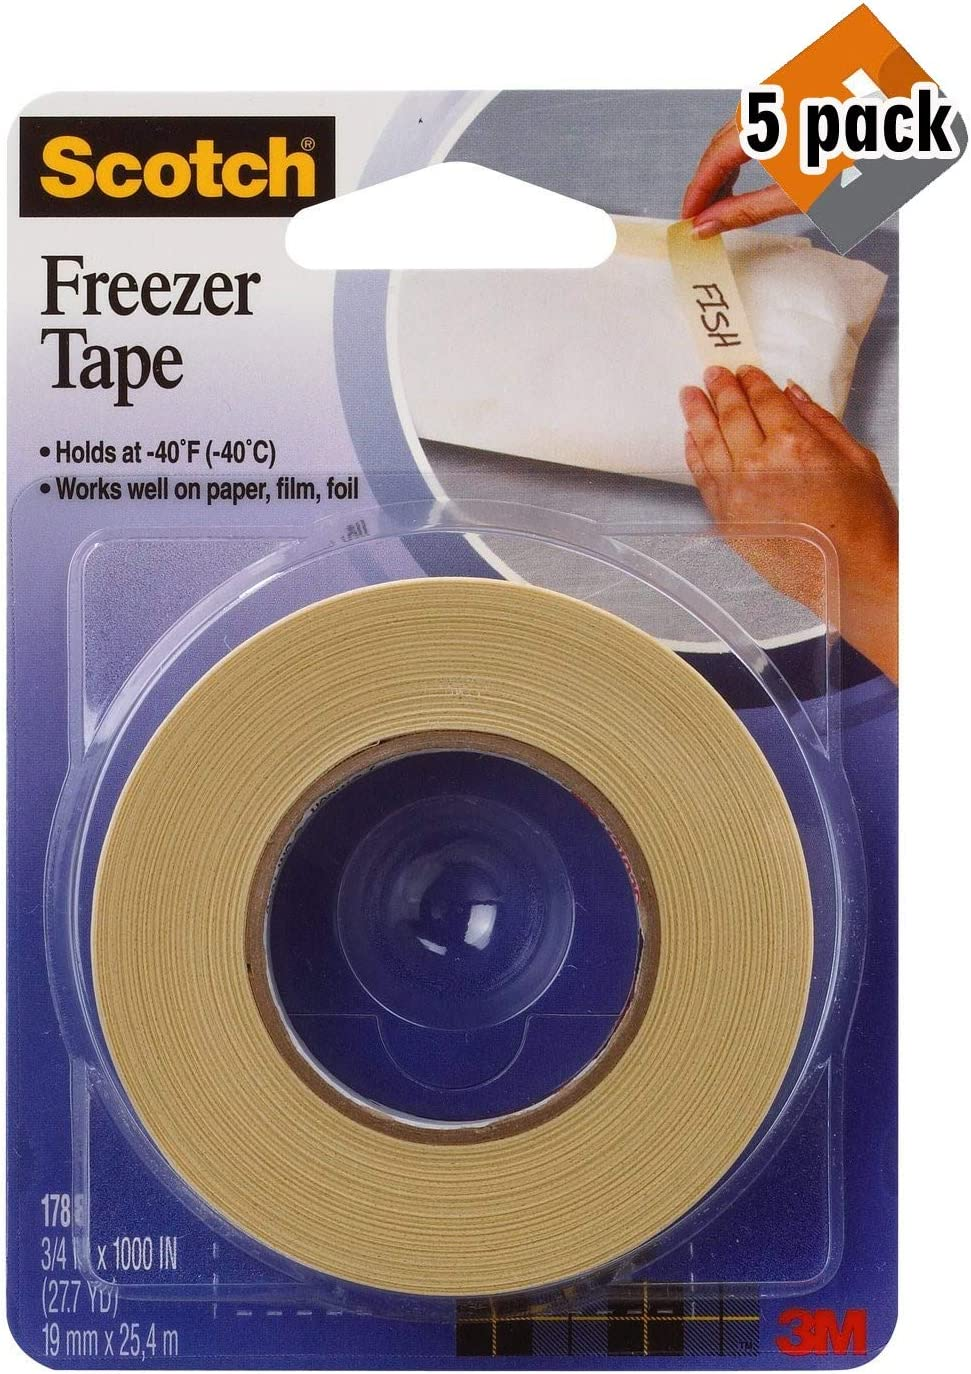 Scotch Freezer Tape, 3/4 x 1000 Inch (178) 5 Pack